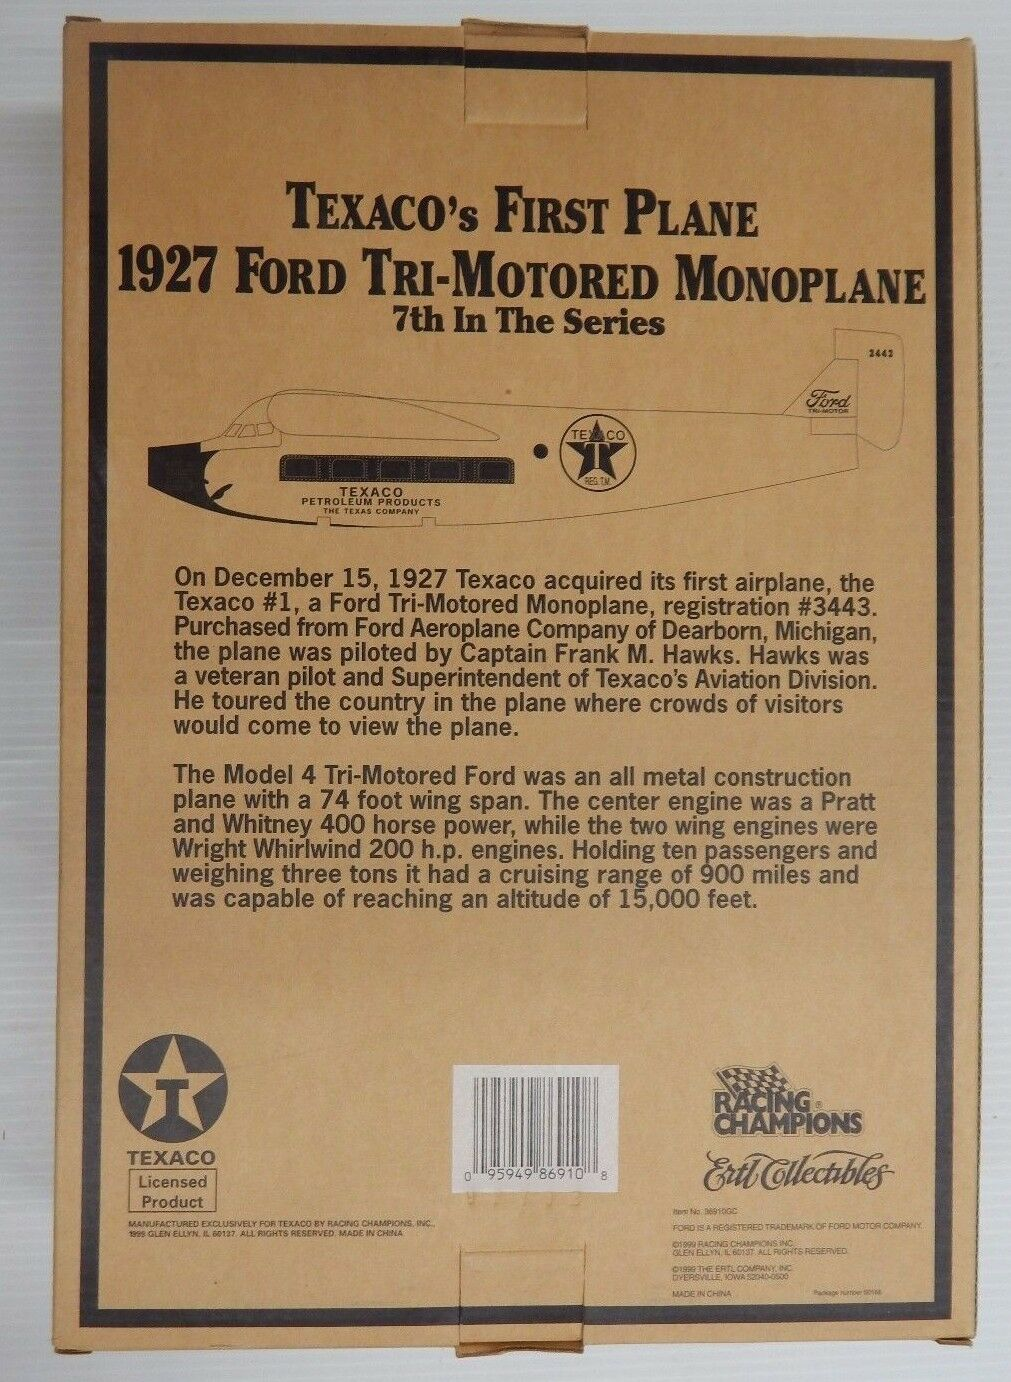 Wings of Texaco Texaco Texaco Collector's 1927 FORD TRI-MOTORED MONOPLANE 7th In Series - New b56fdc